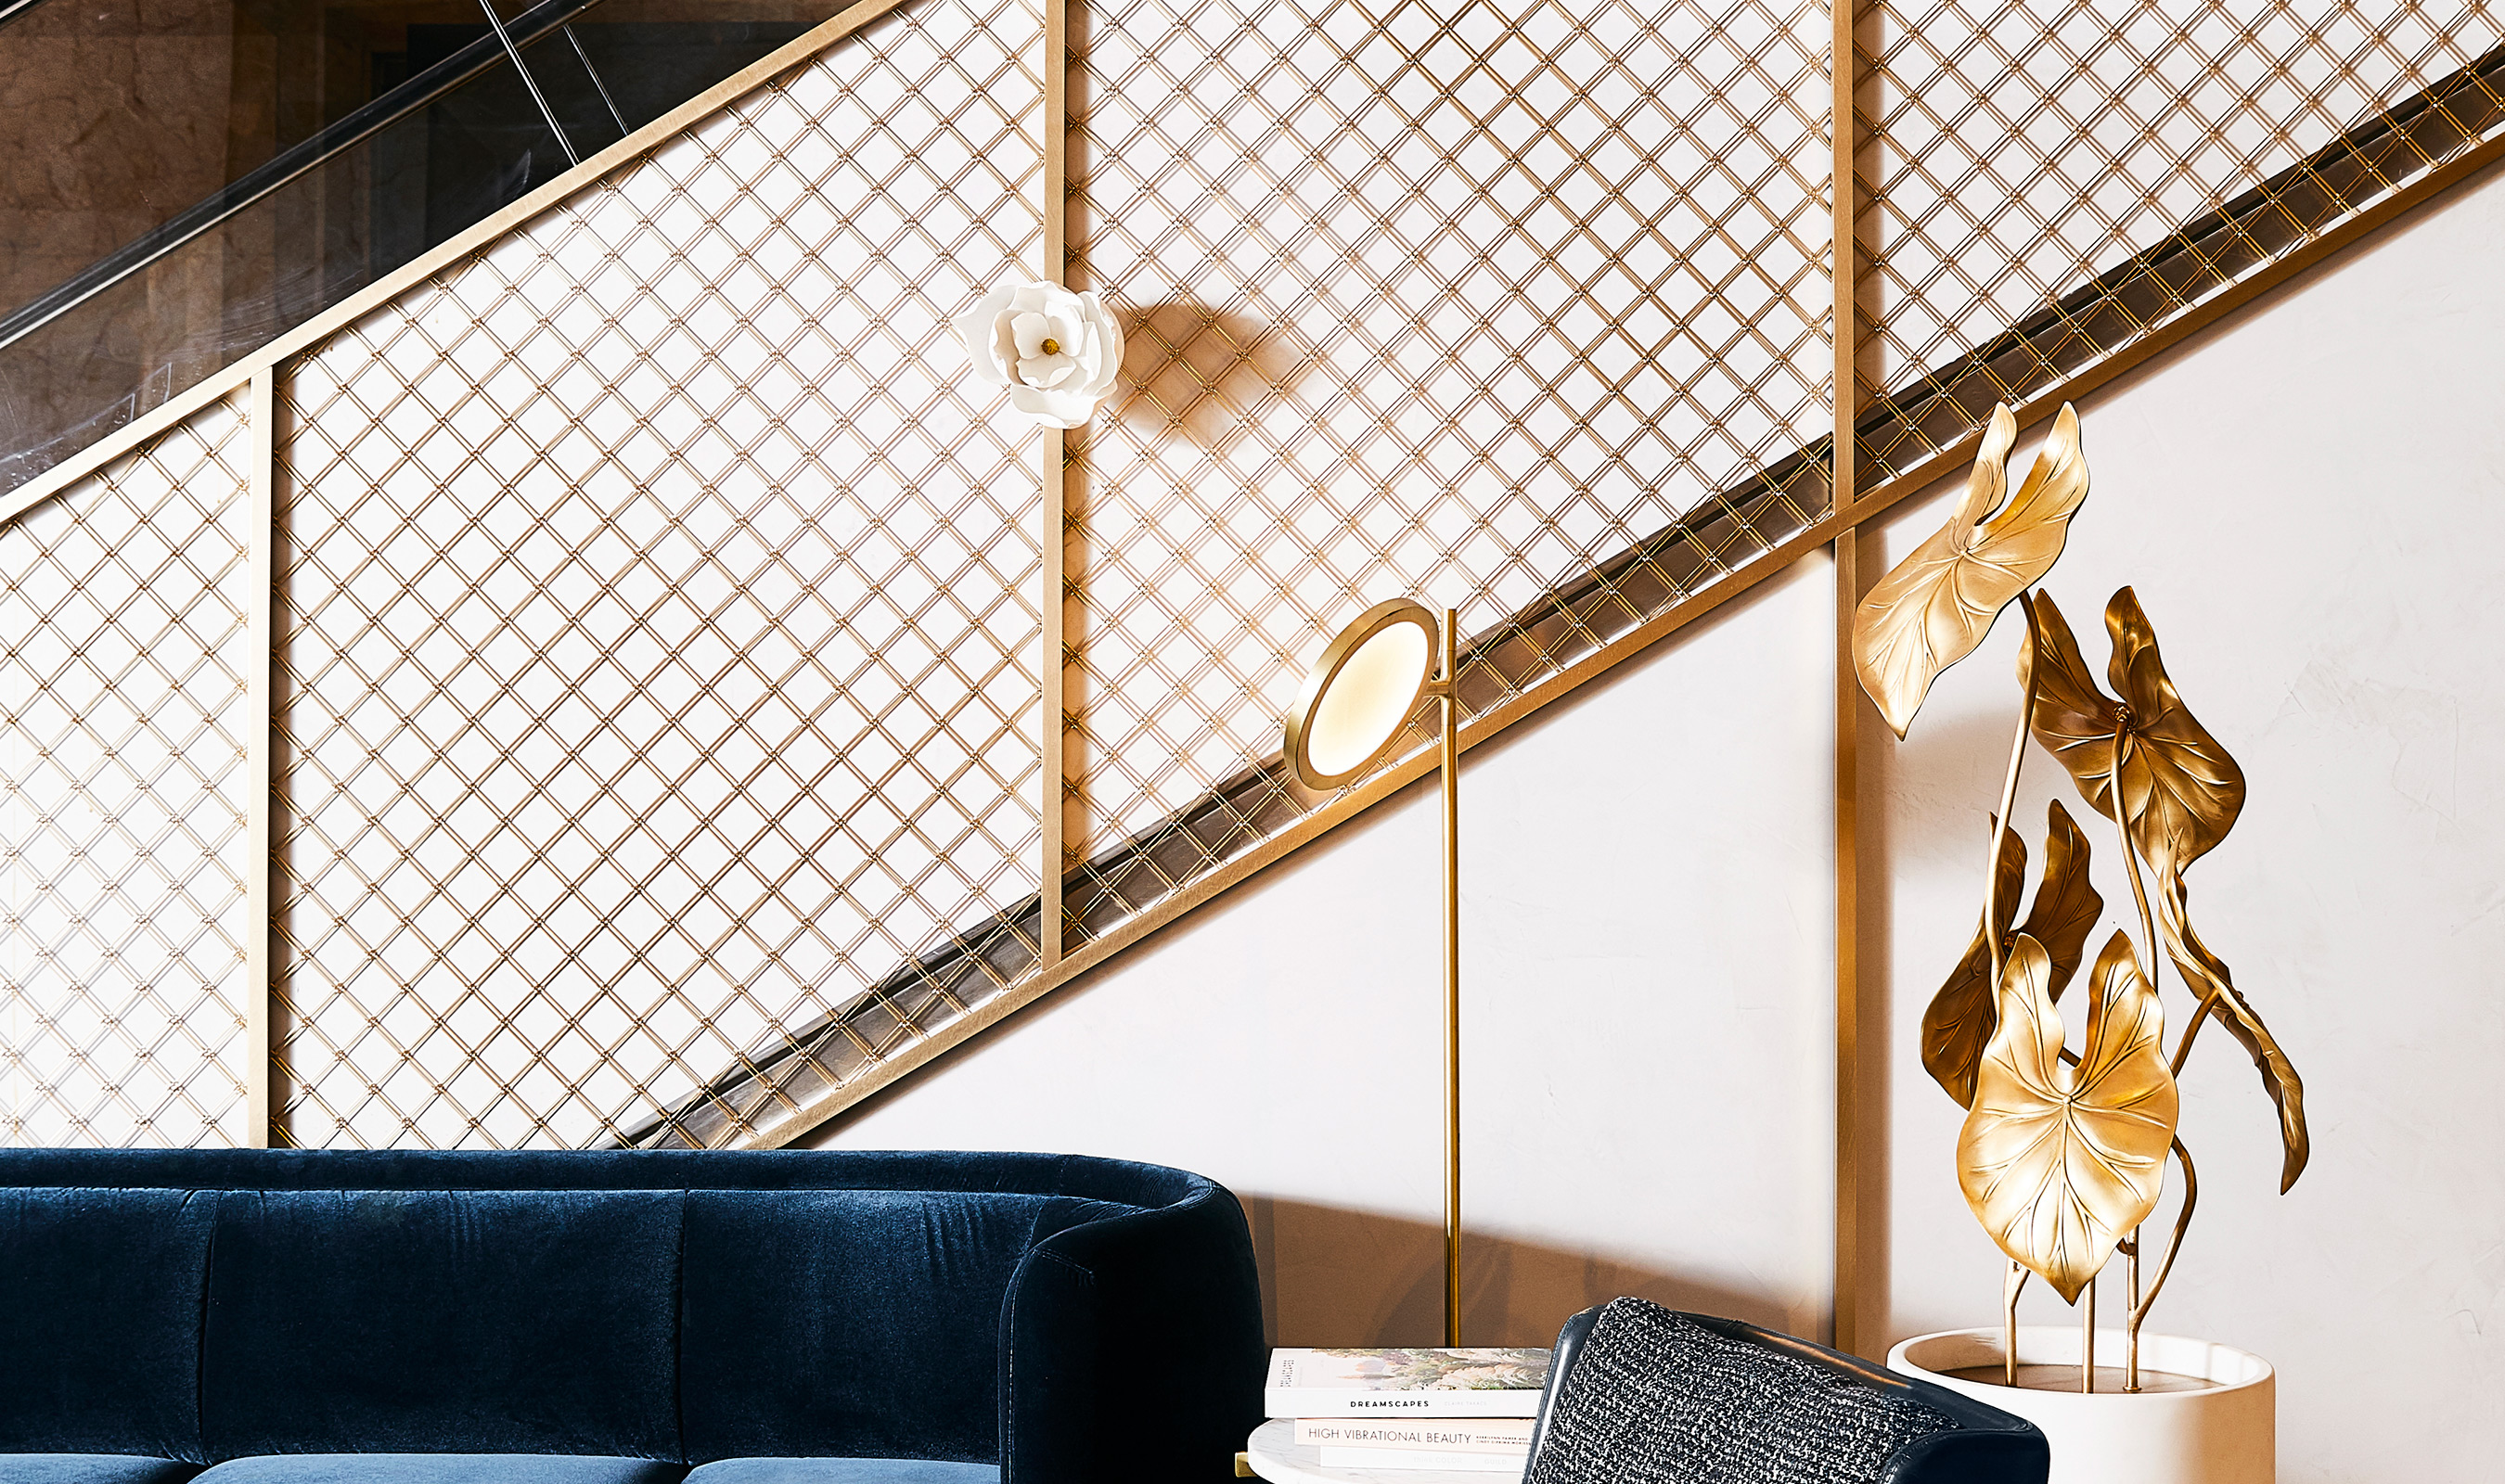 Banker Wire's M22-34 is woven in brass and used as cladding on the escalators at the 900 North Michigan Shops in Chicago.